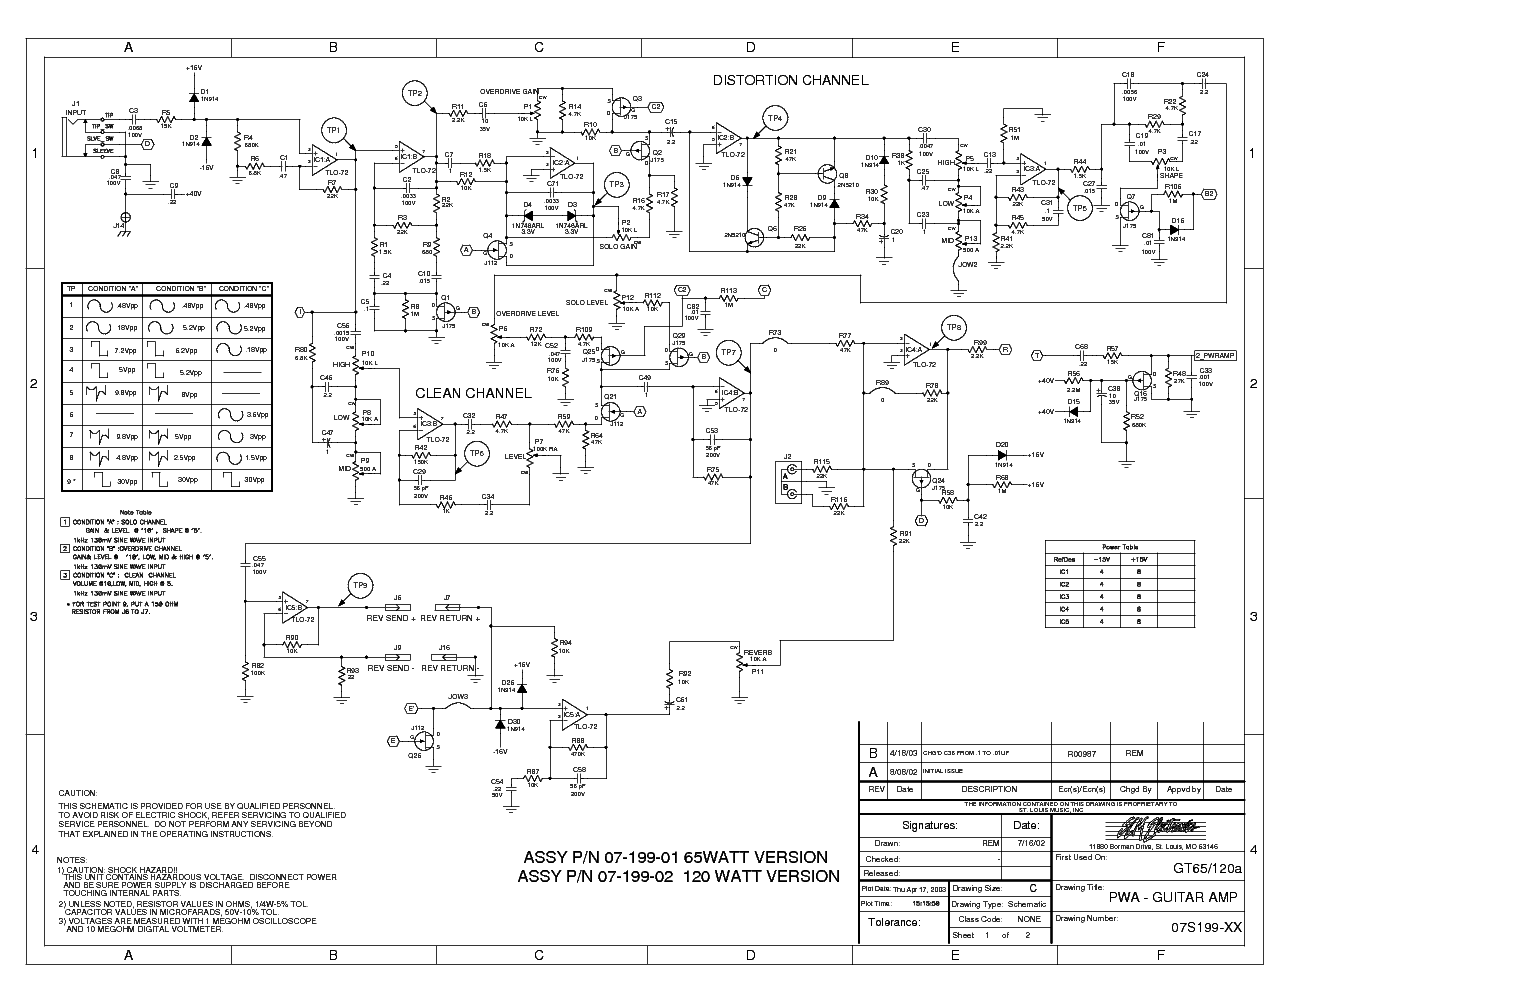 Wiring Diagram Gx 65 Crate Amplifier And Schematics Fender Guitar Manuals Parts B S Gx65 Schematic Block Diagrams Source Gt 120a Sch Service Manual Eeprom Rh Elektrotanya Com